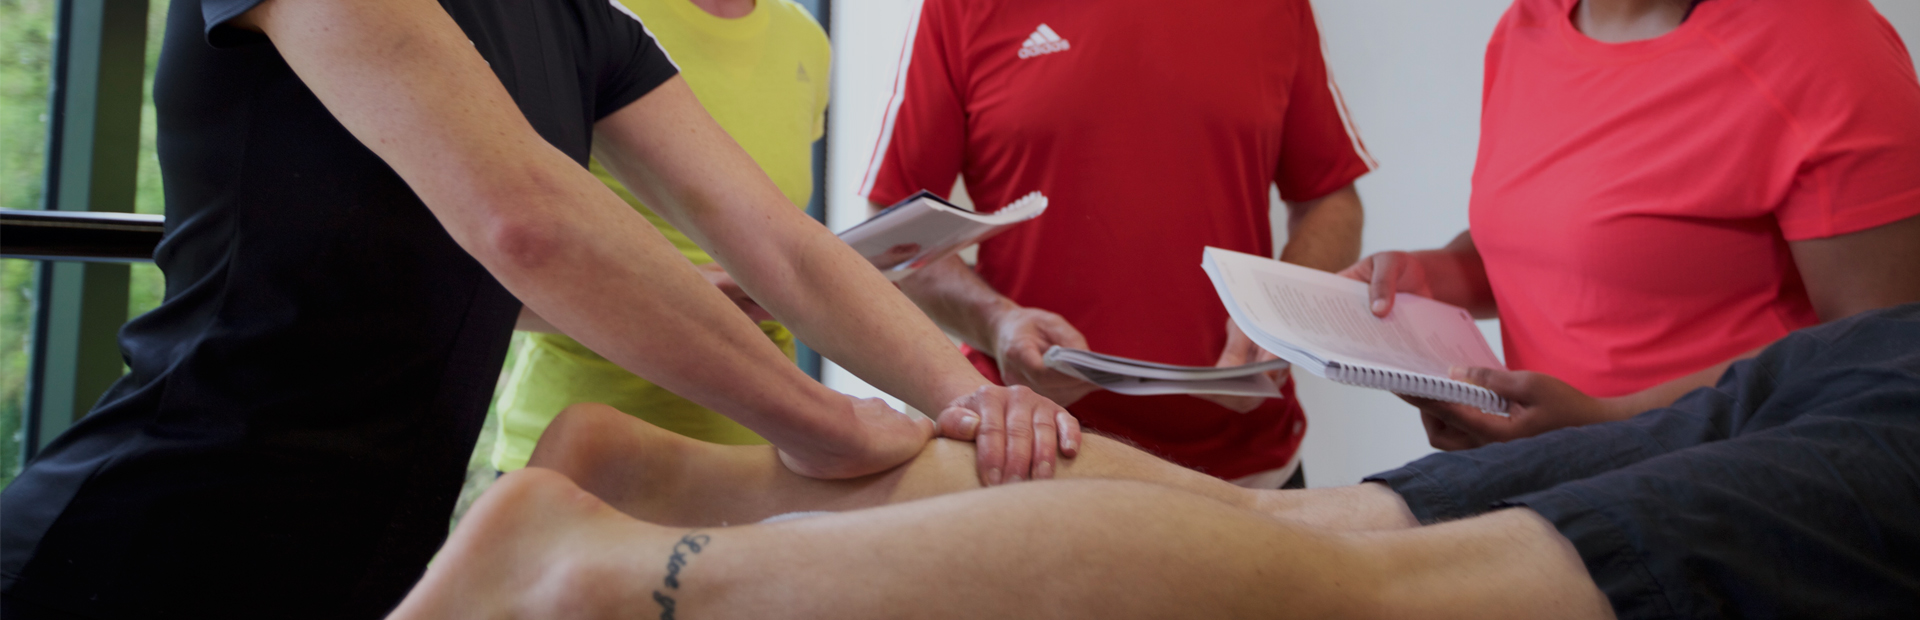 HFE's Level 4 sports massage course